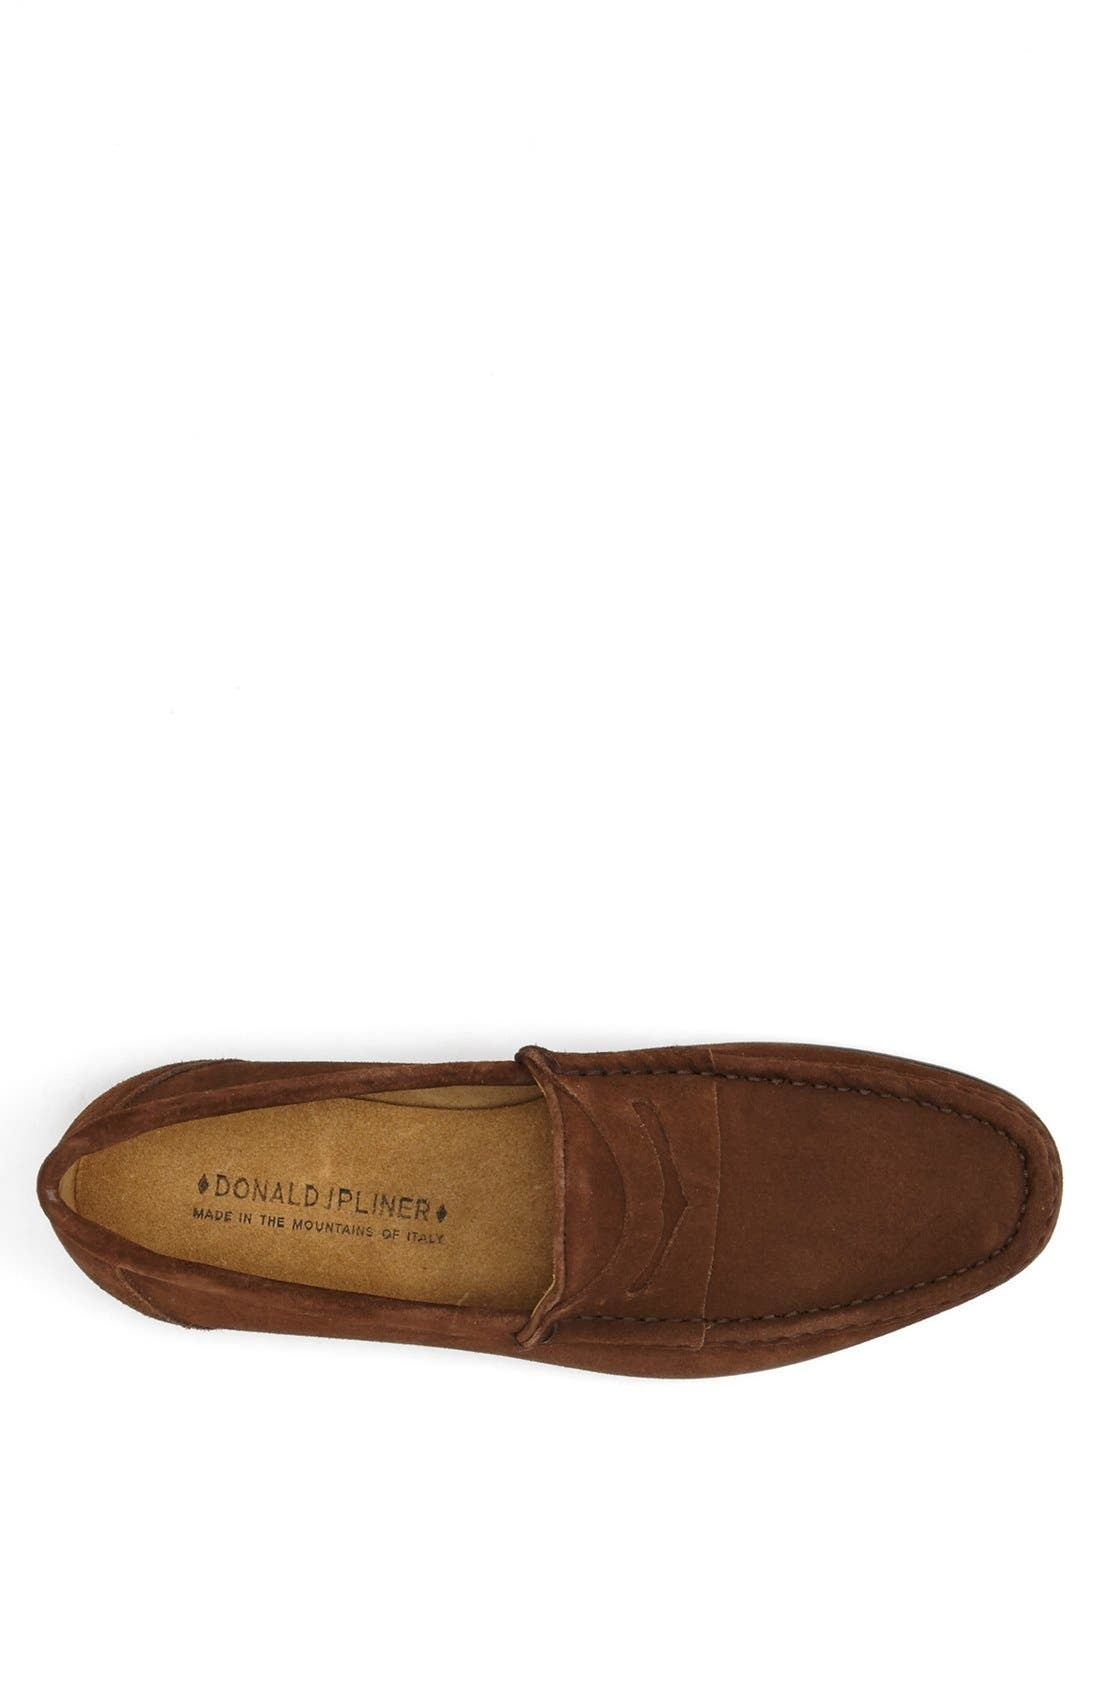 Alternate Image 3  - Donald J Pliner 'Naper' Penny Loafer